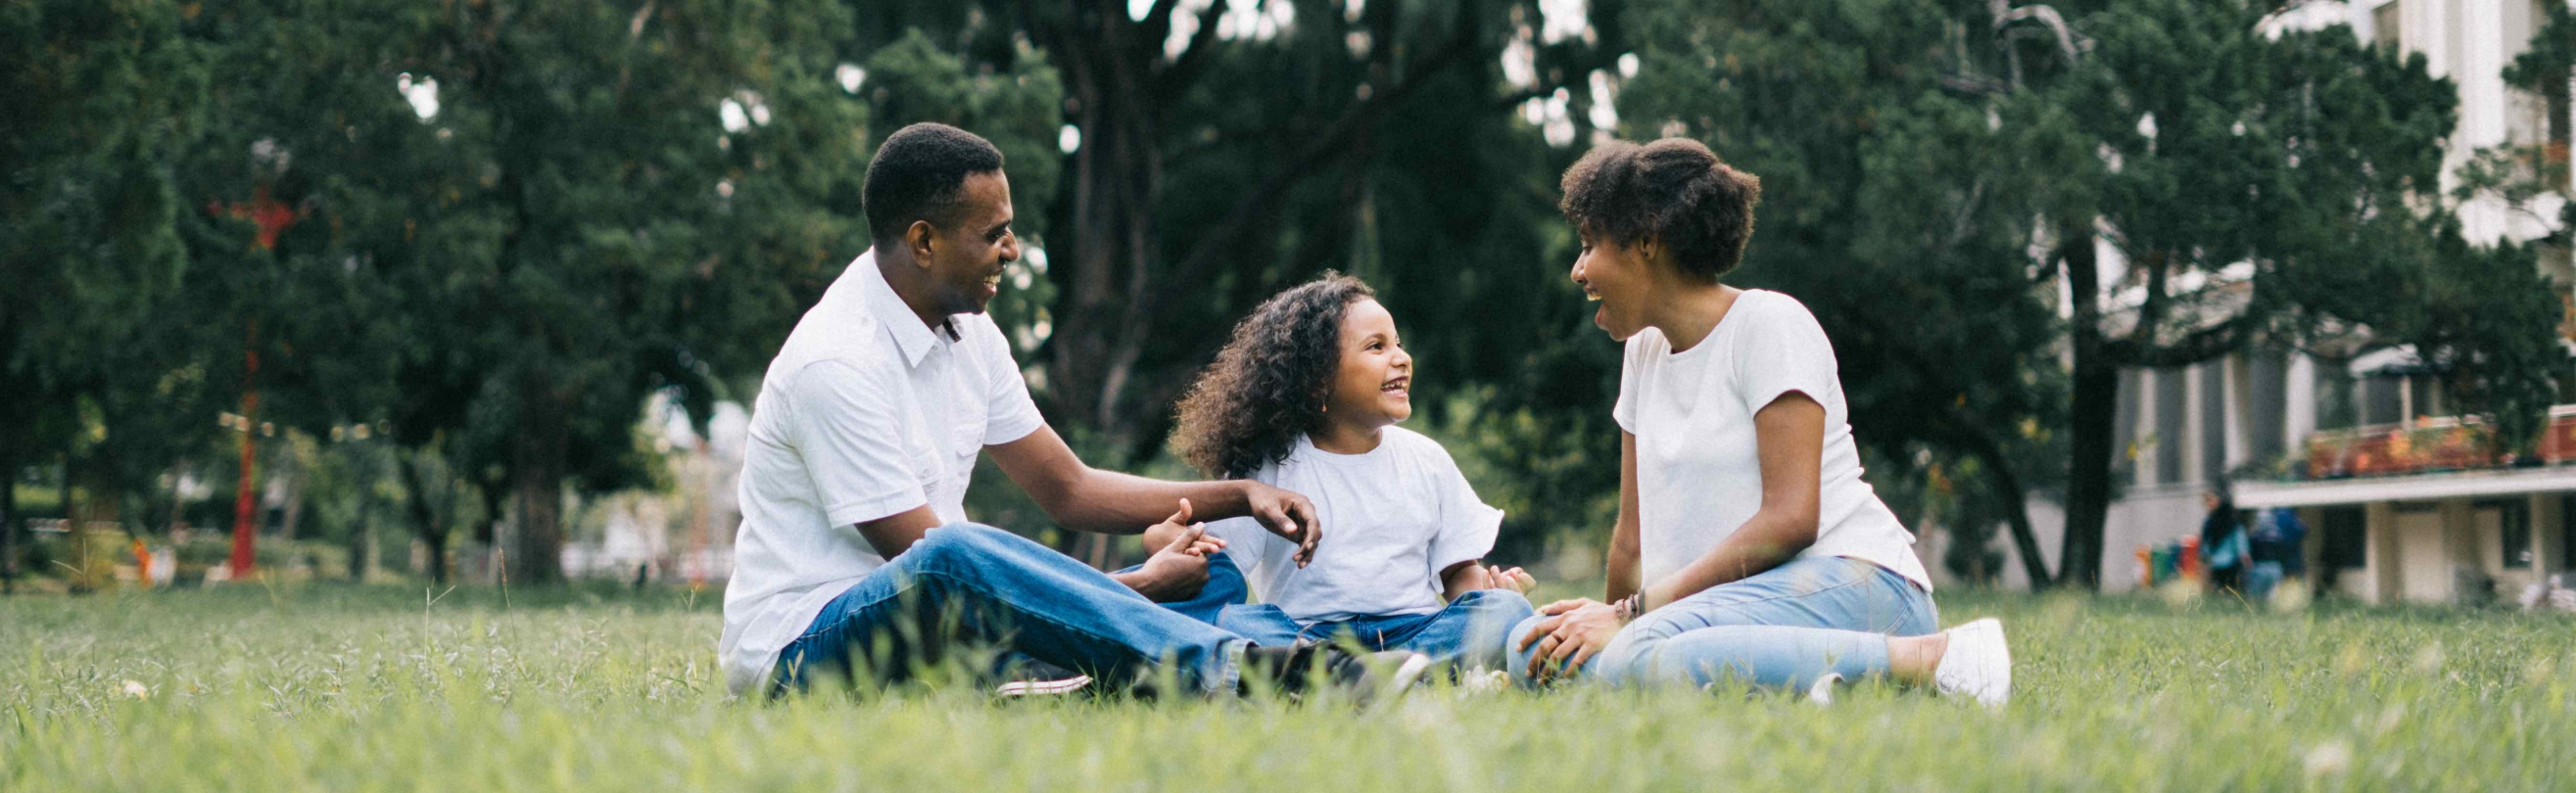 Three person family sitting on grass